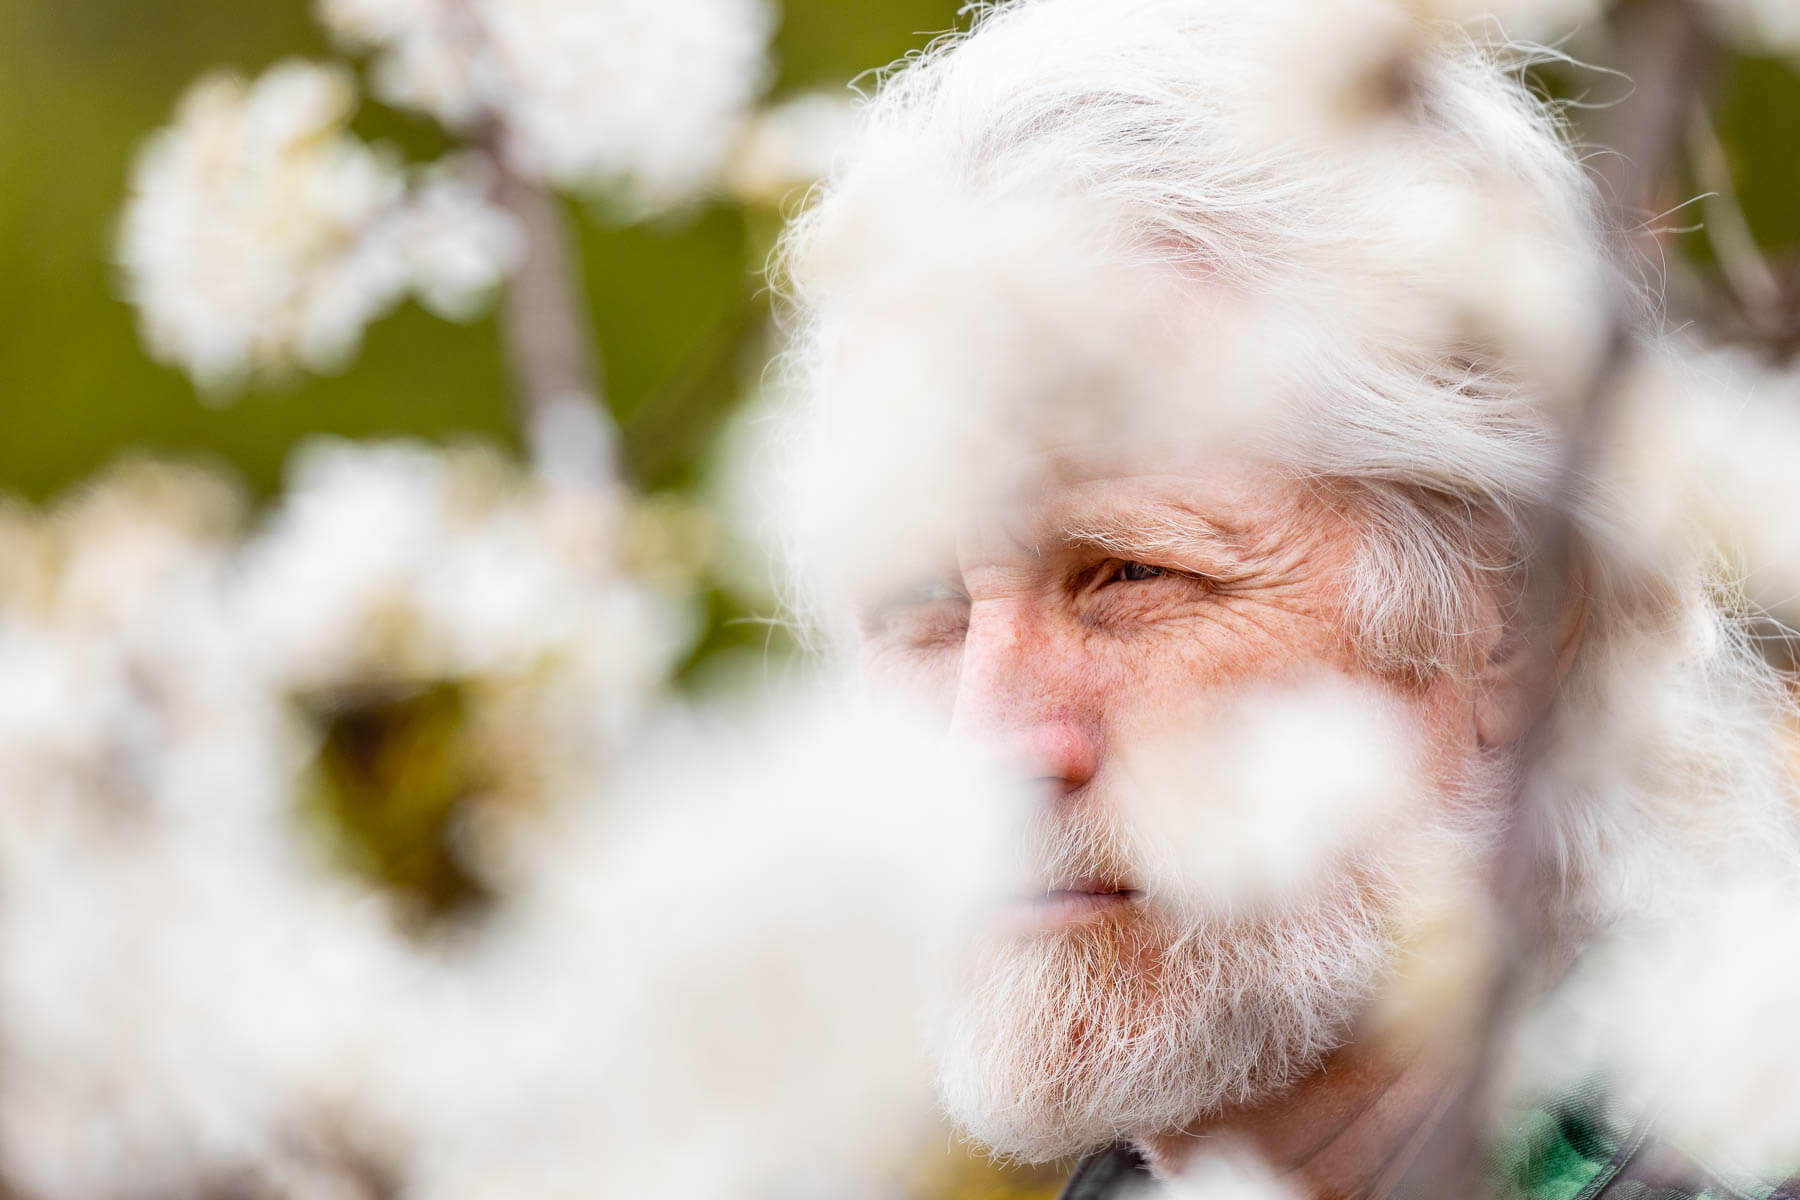 Man with white hair amid white flowers